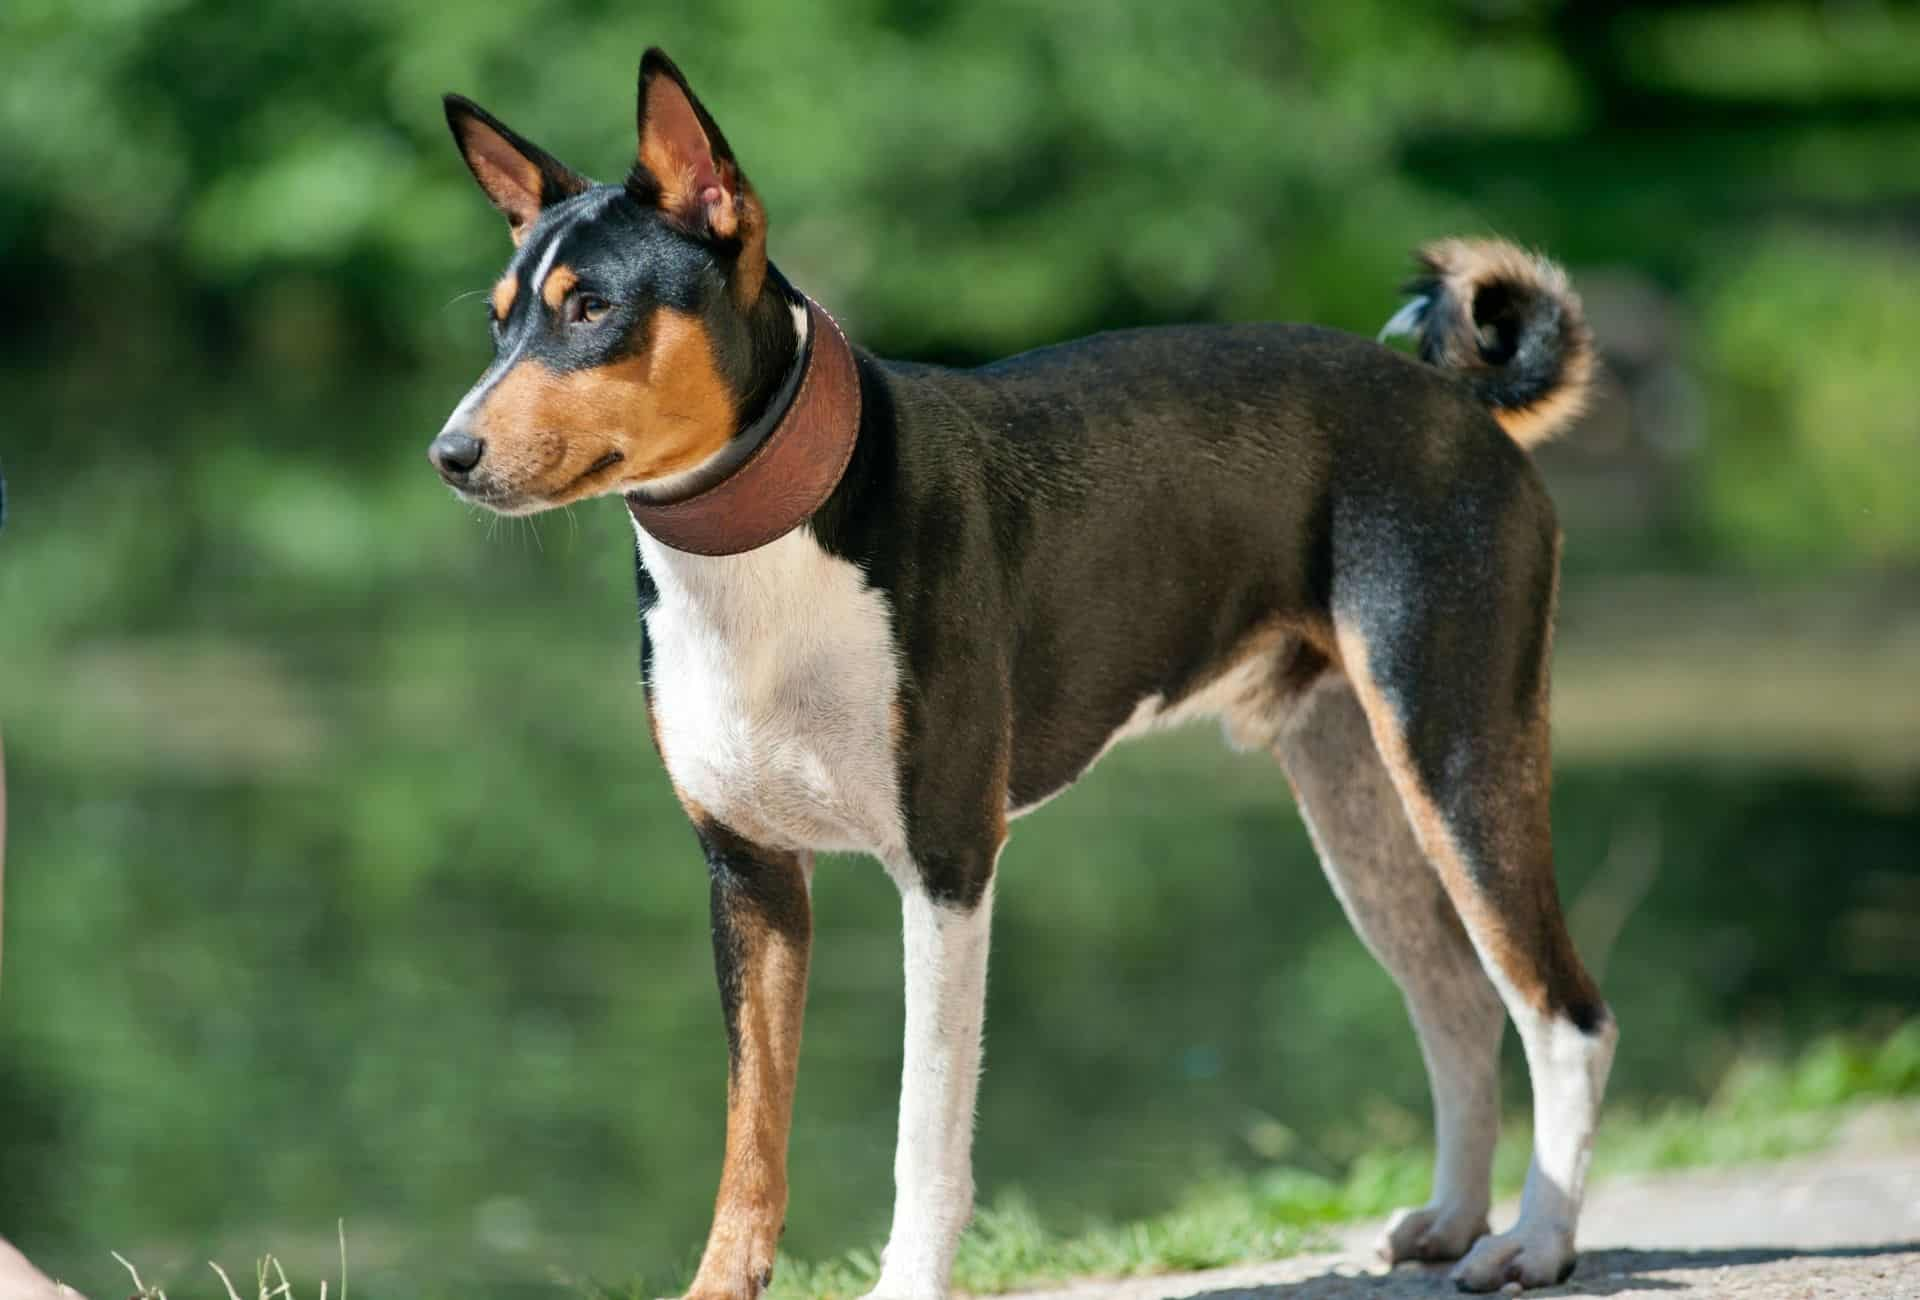 Basenji with dominating black coat but also white on the legs and chest as well as brown around the face.